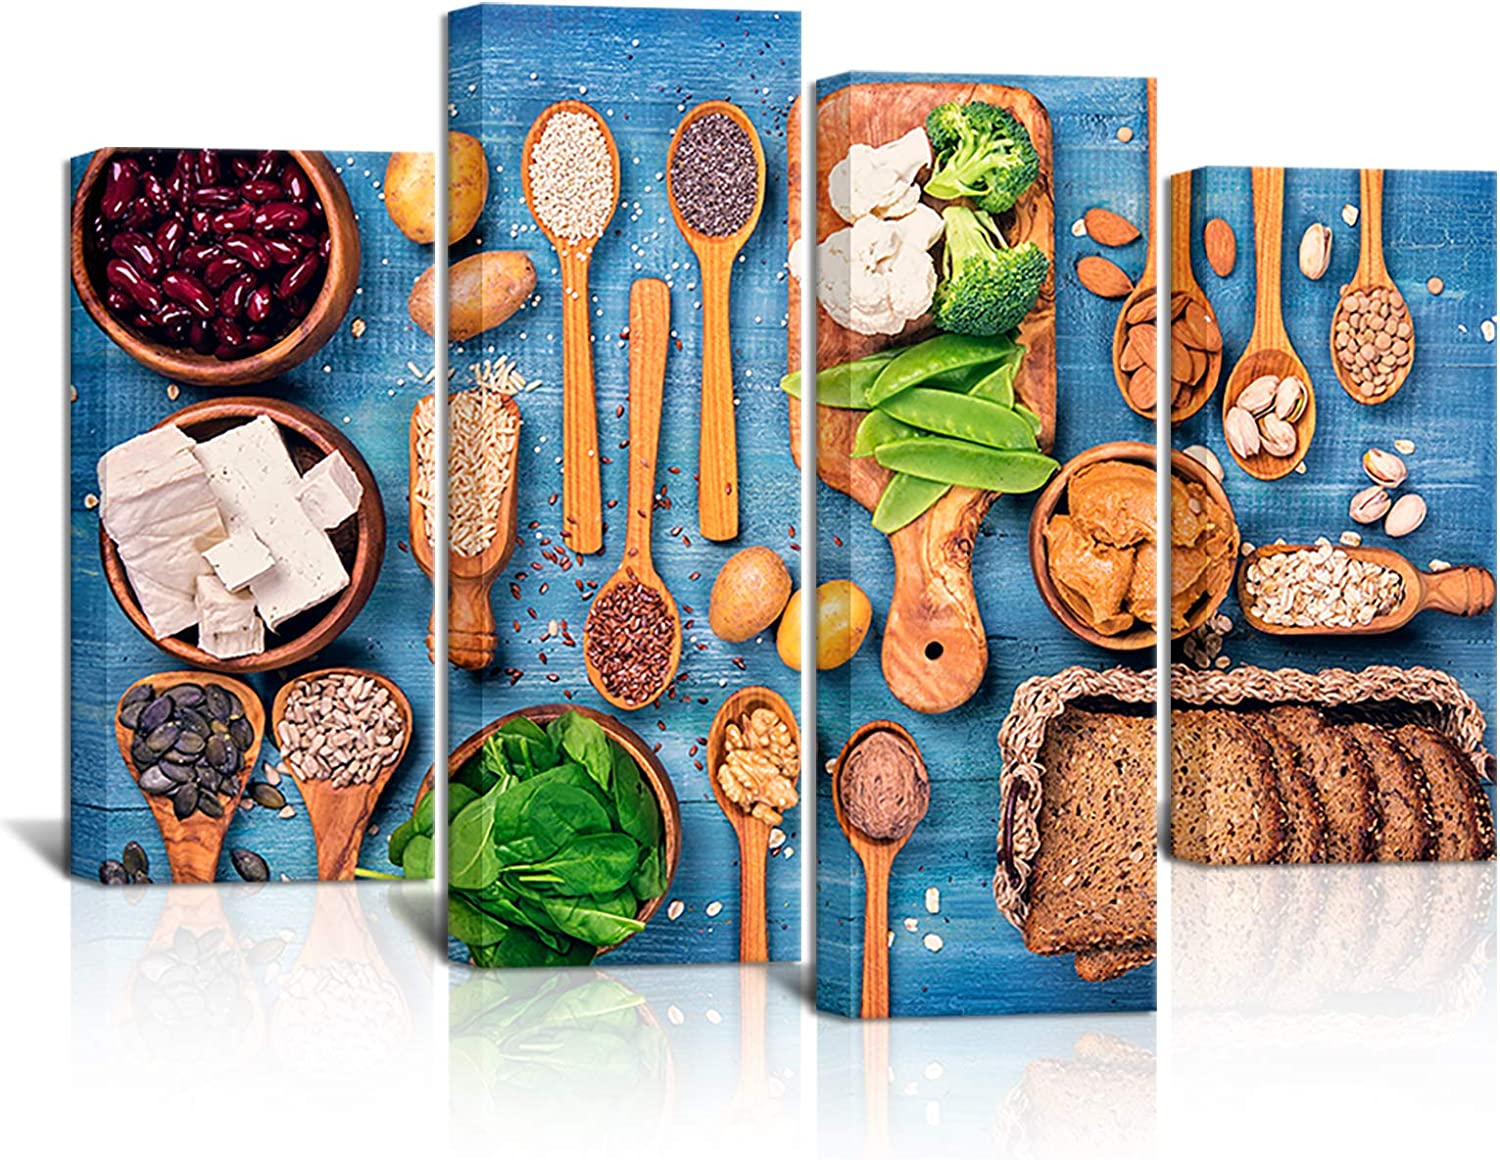 KLVOS 4 Piece Kitchen Pictures Wall Decor Healthy Vegetable and Grain Food Canvas Wall Art Painting Print on Blue Wooden Table Modern Dining Room Home Art Decor Stretched and Framed Ready to Hang